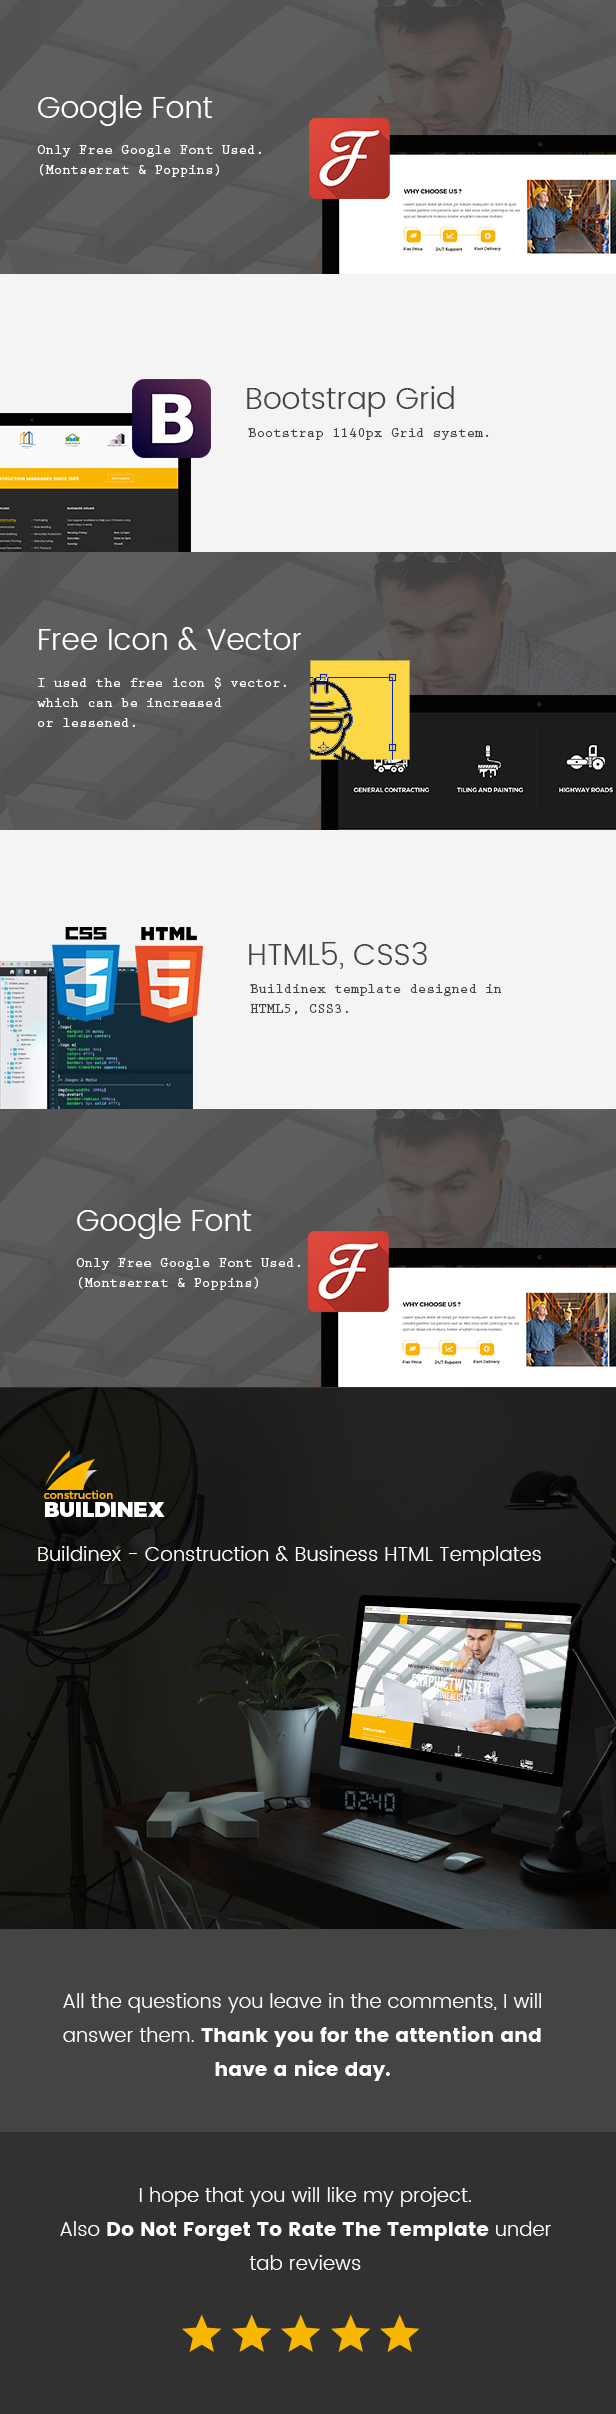 Cool Css3 Template Photos - Professional Resume Example Ideas ...